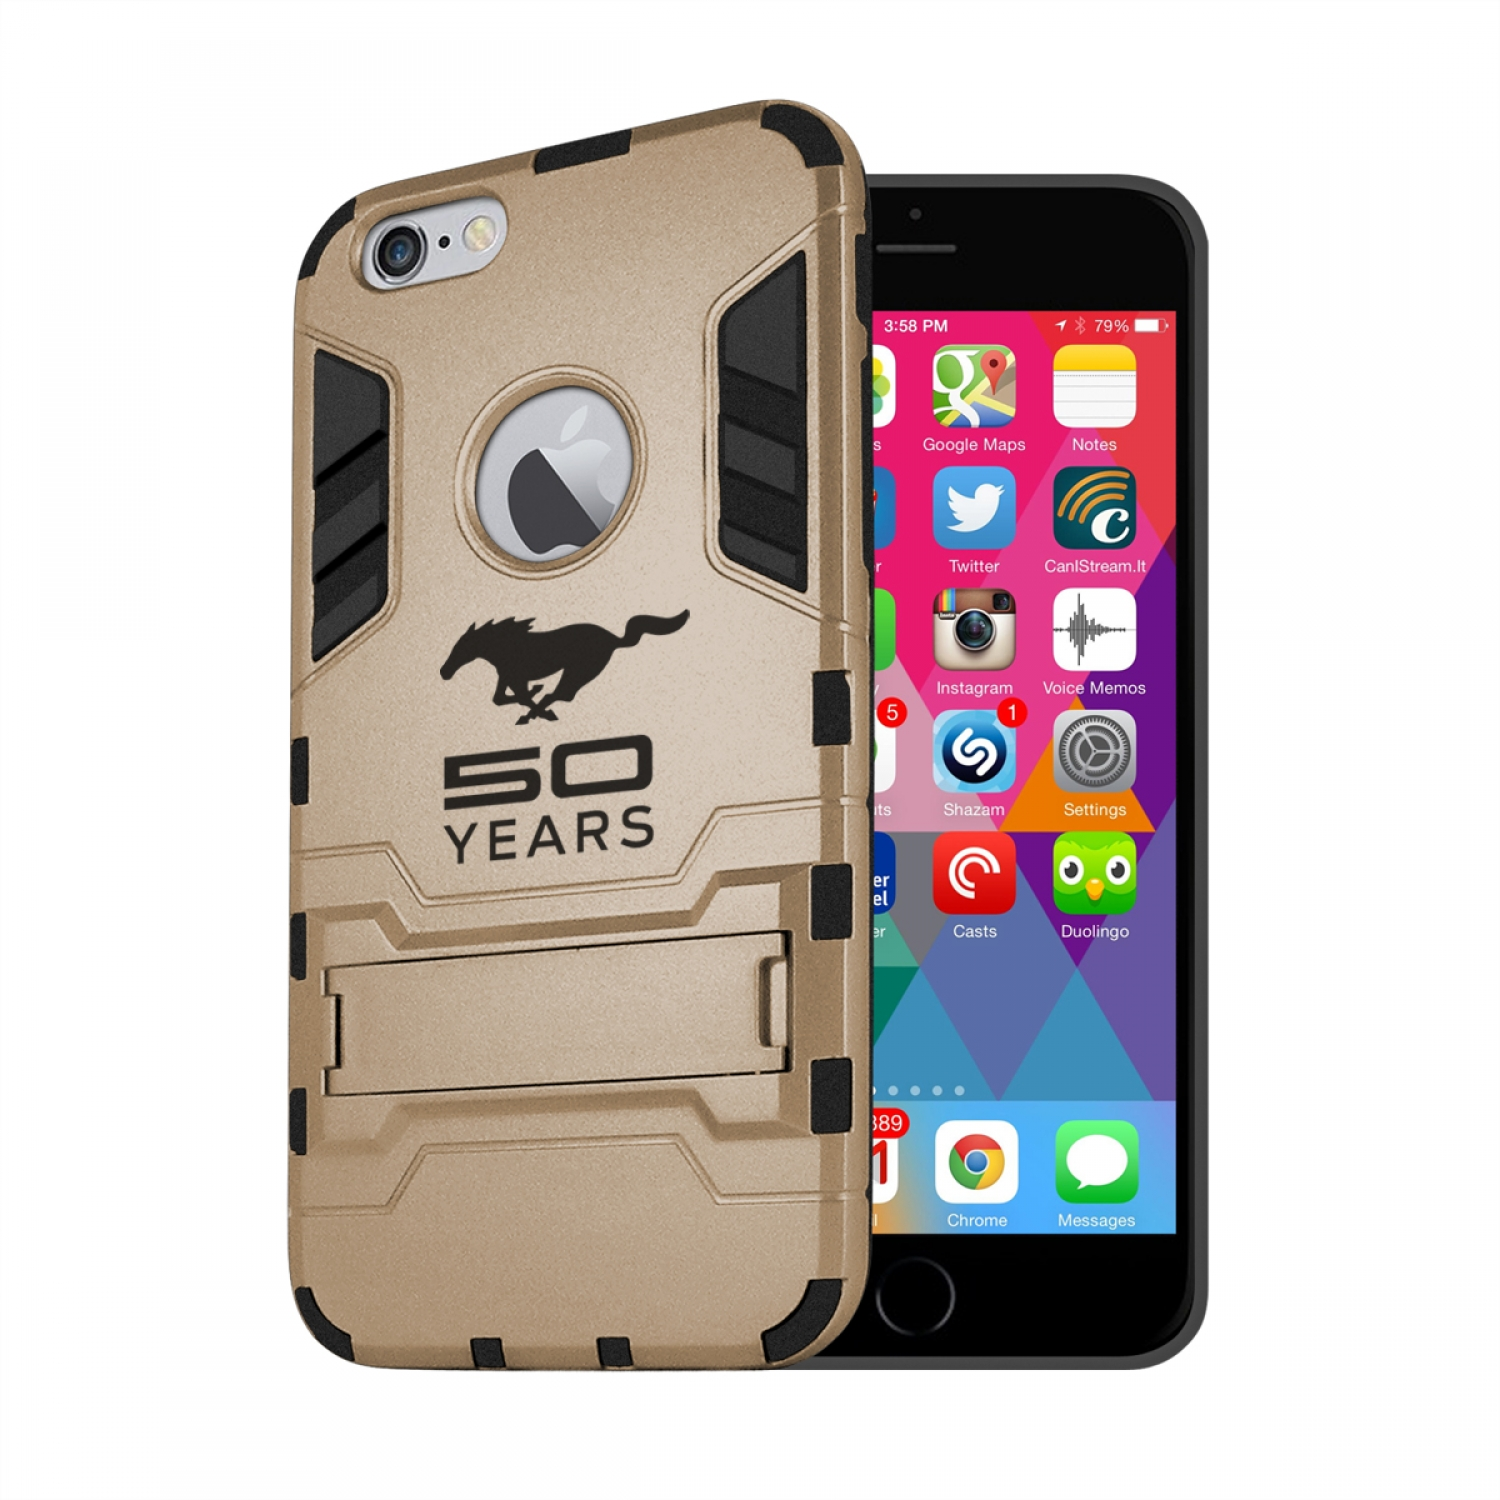 Ford Mustang 50 Years iPhone 6 6s Shockproof TPU ABS Hybrid Golden Phone Case